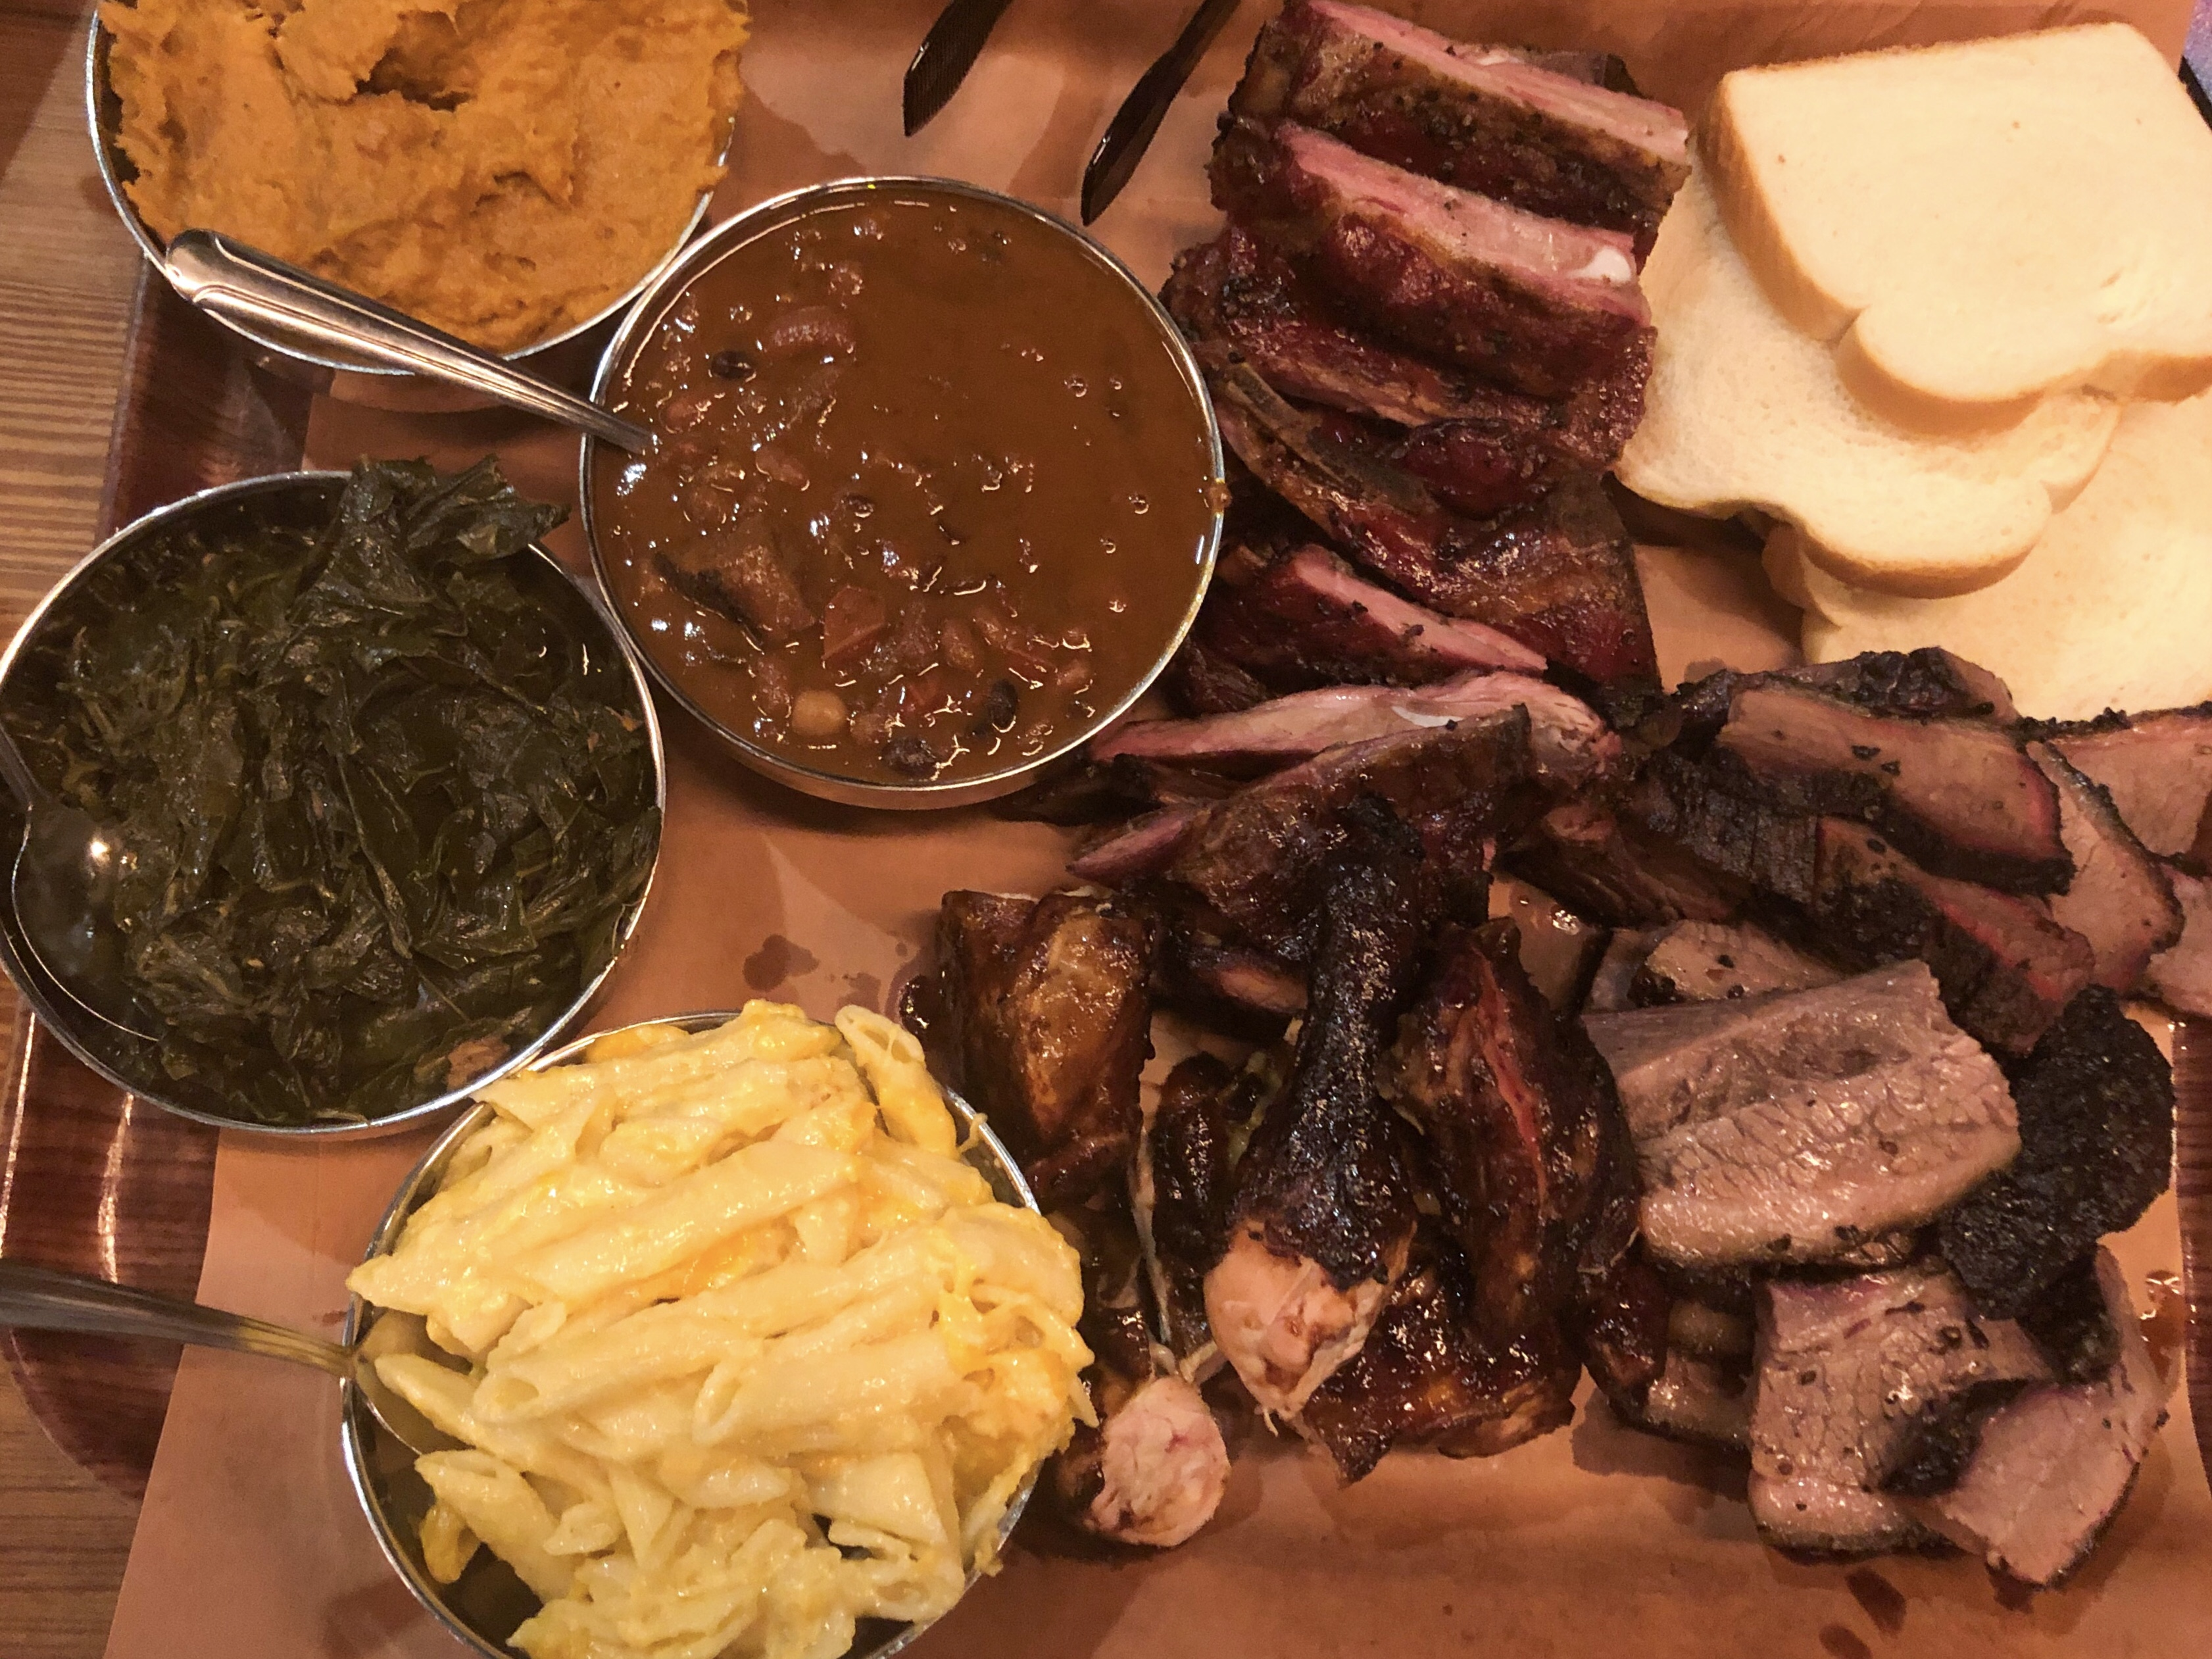 Hill Country BBQ's all-you-can-eat option includes unlimited chicken, short ribs, roast beef, and sides.